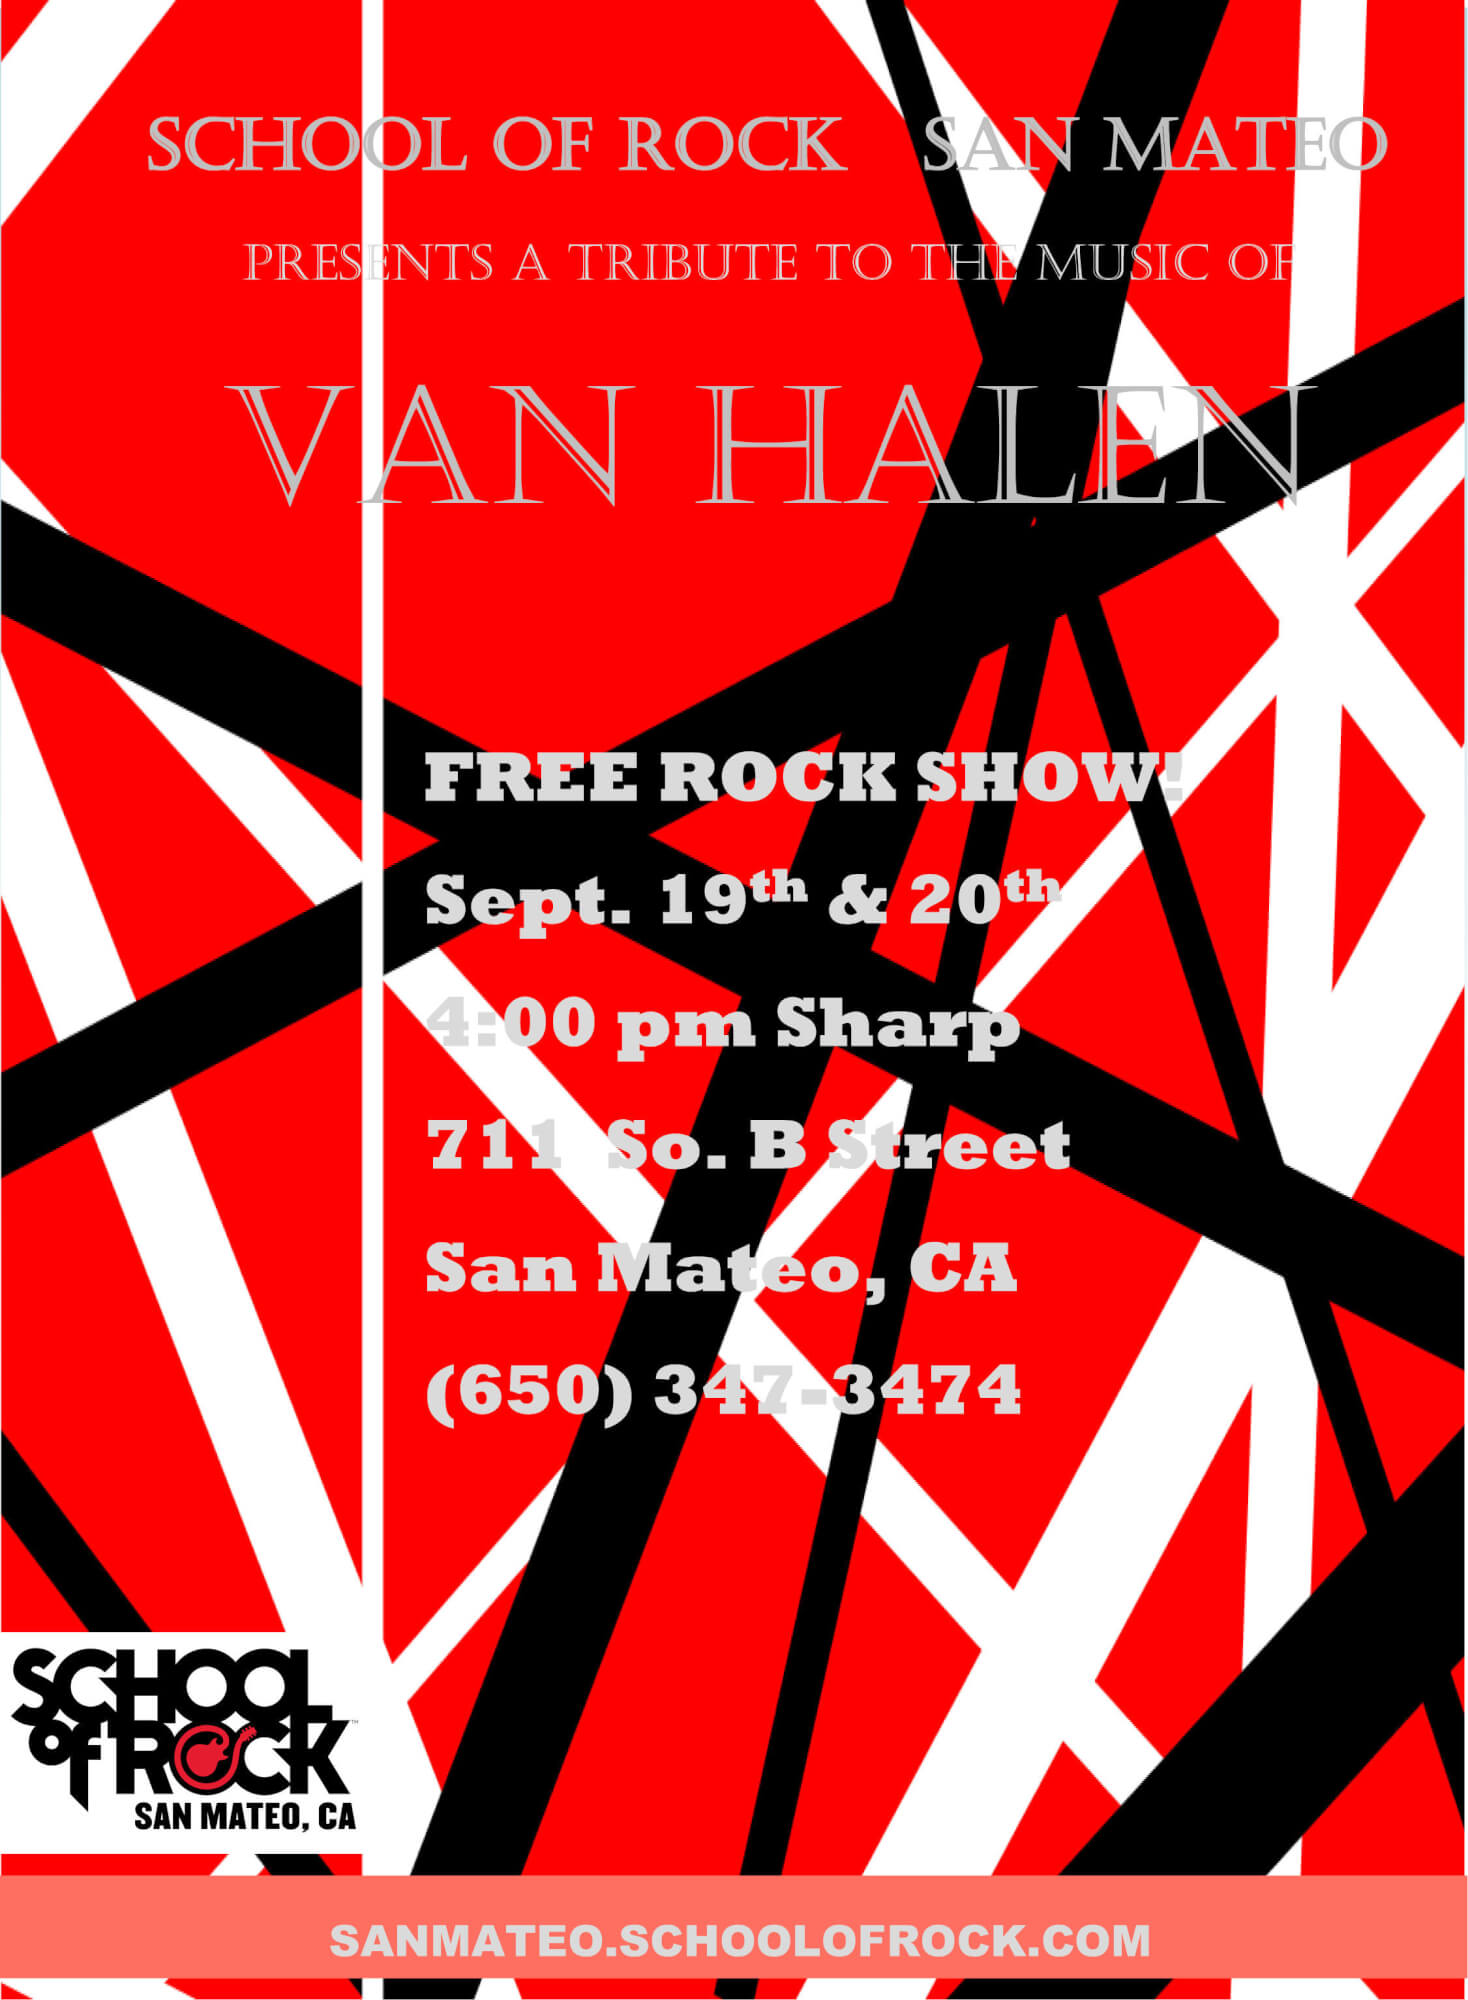 FREE ROCK SHOW Sept. 19th & 20th